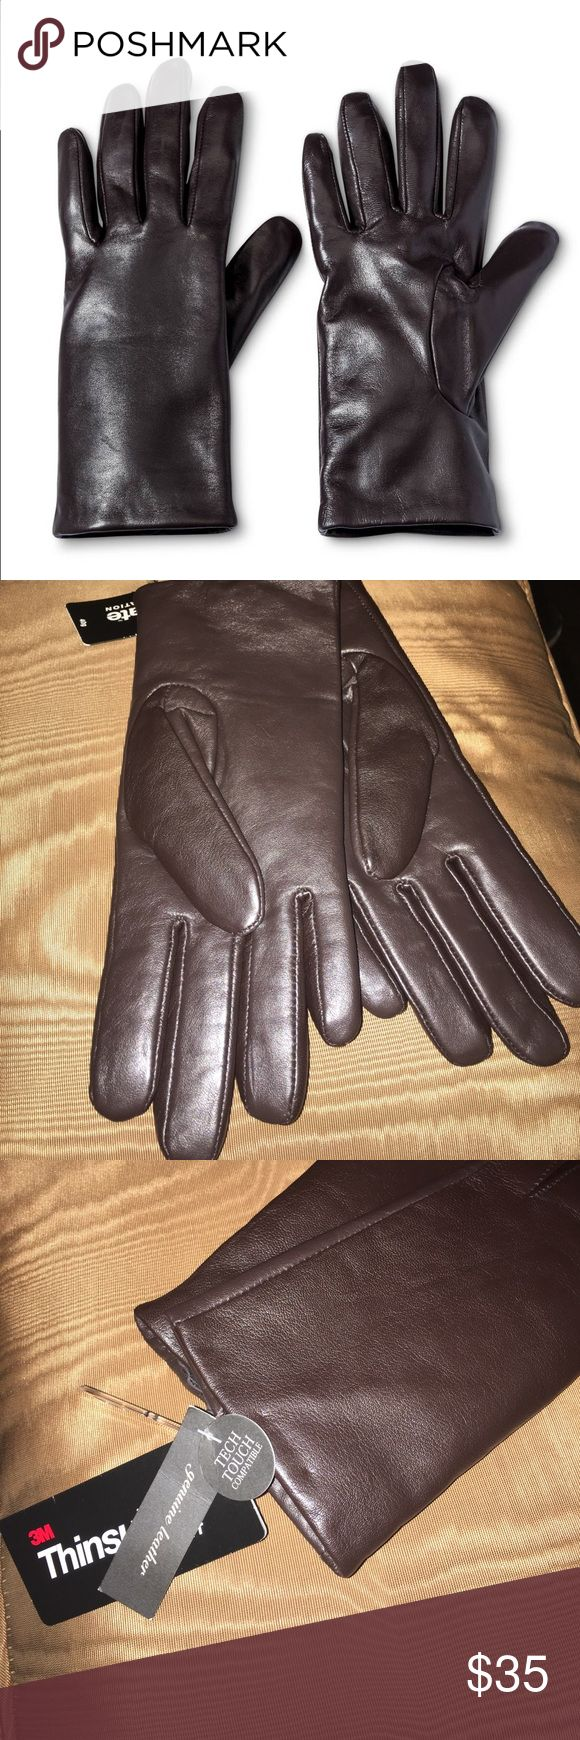 Leather work gloves screwfix - Nwt Leather Woman S Black Gloves In Dark Brown Boutique